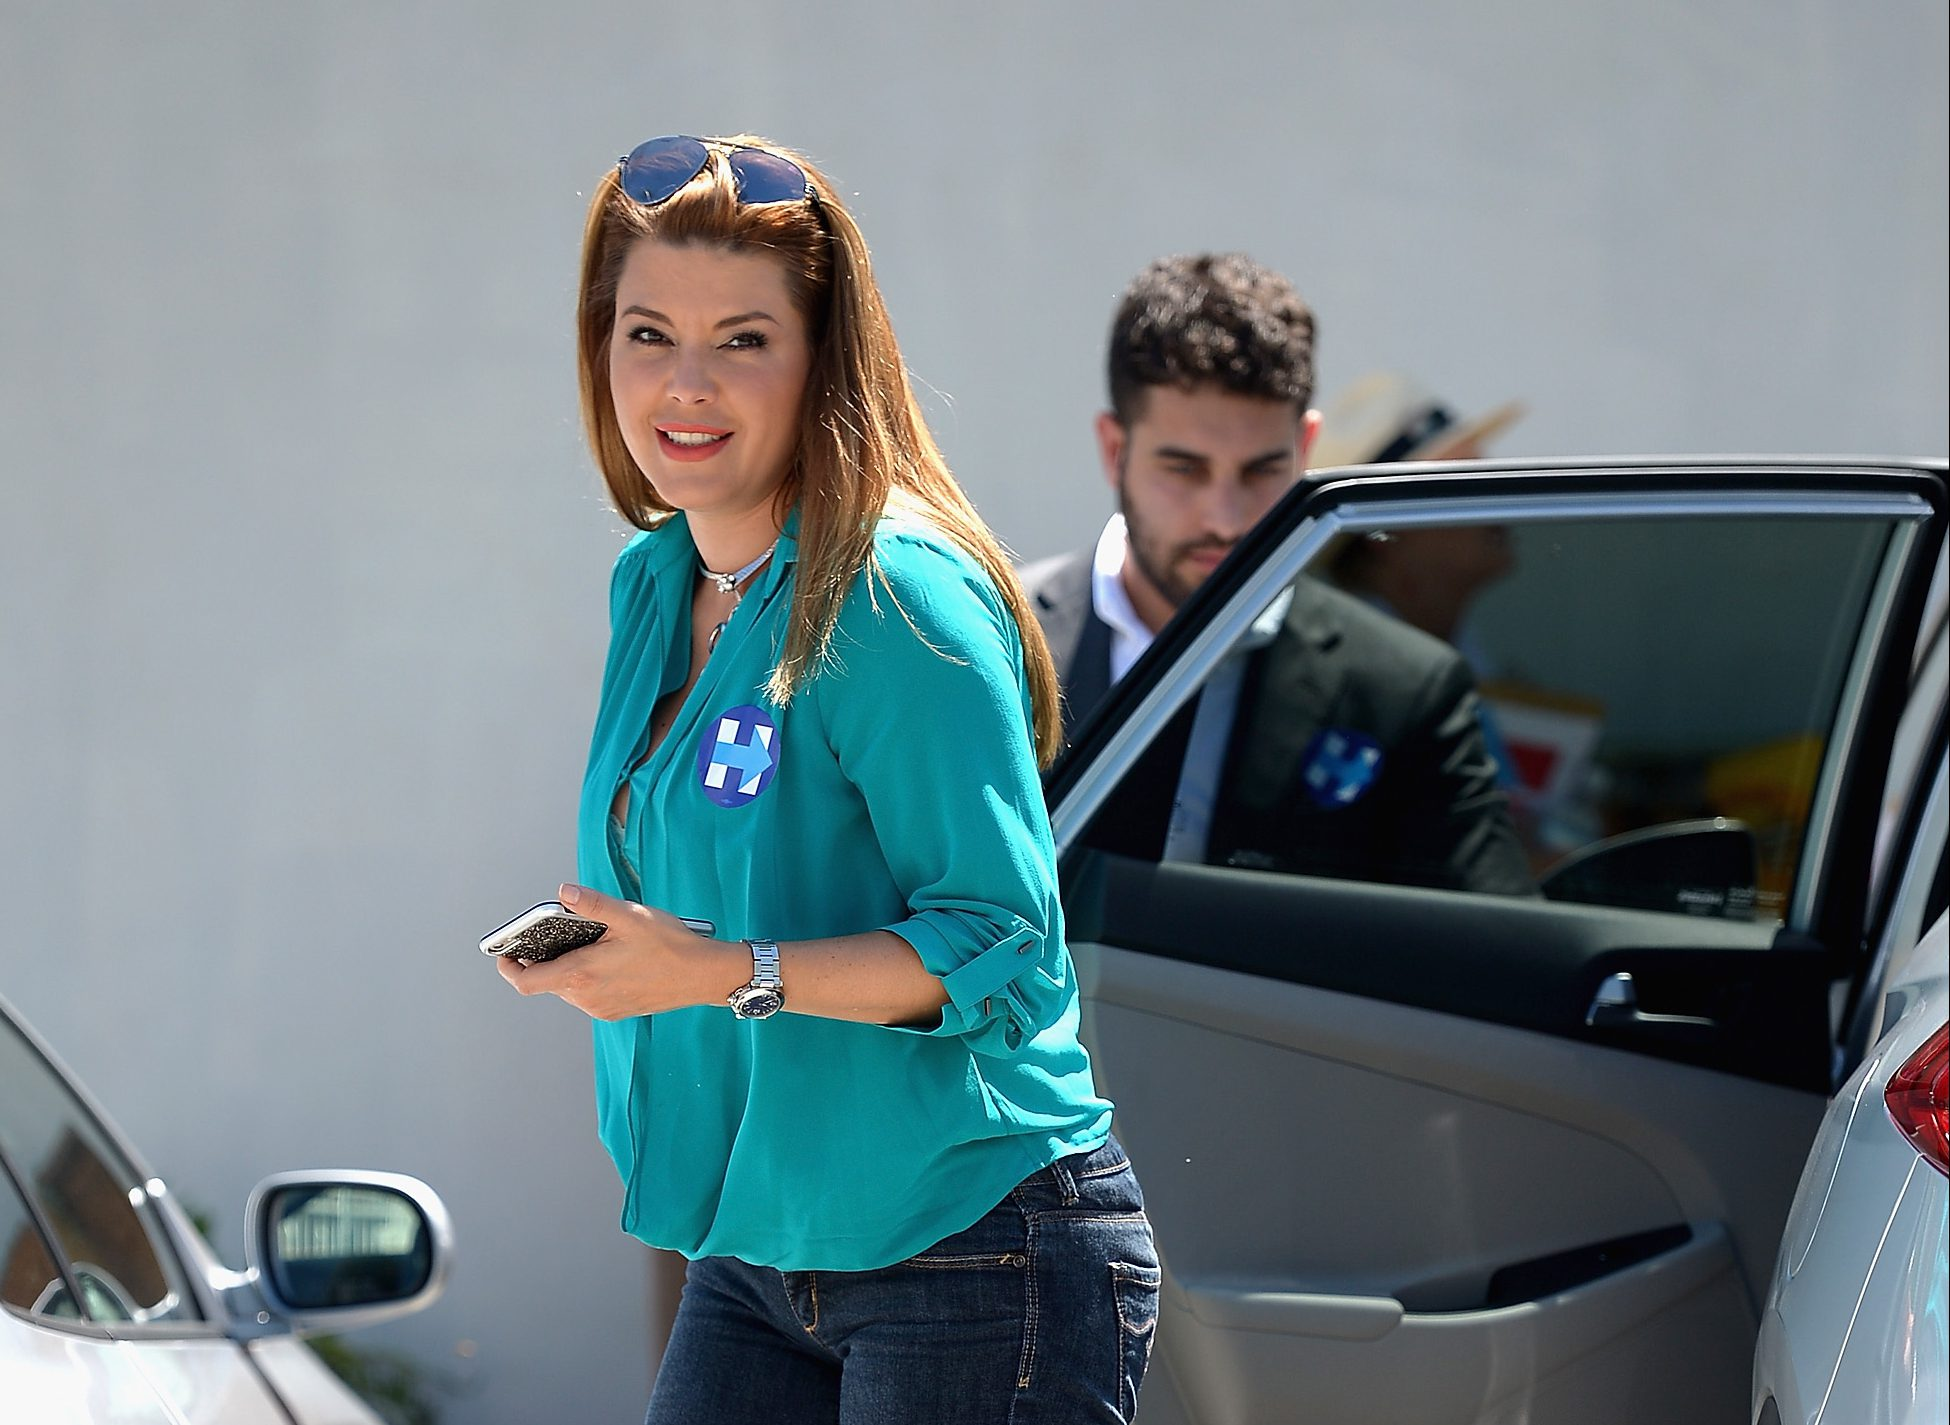 alicia machado, alicia machado hillary clinton, alicia machado debate, alicia machado miss piggy, alicia machado donald trump